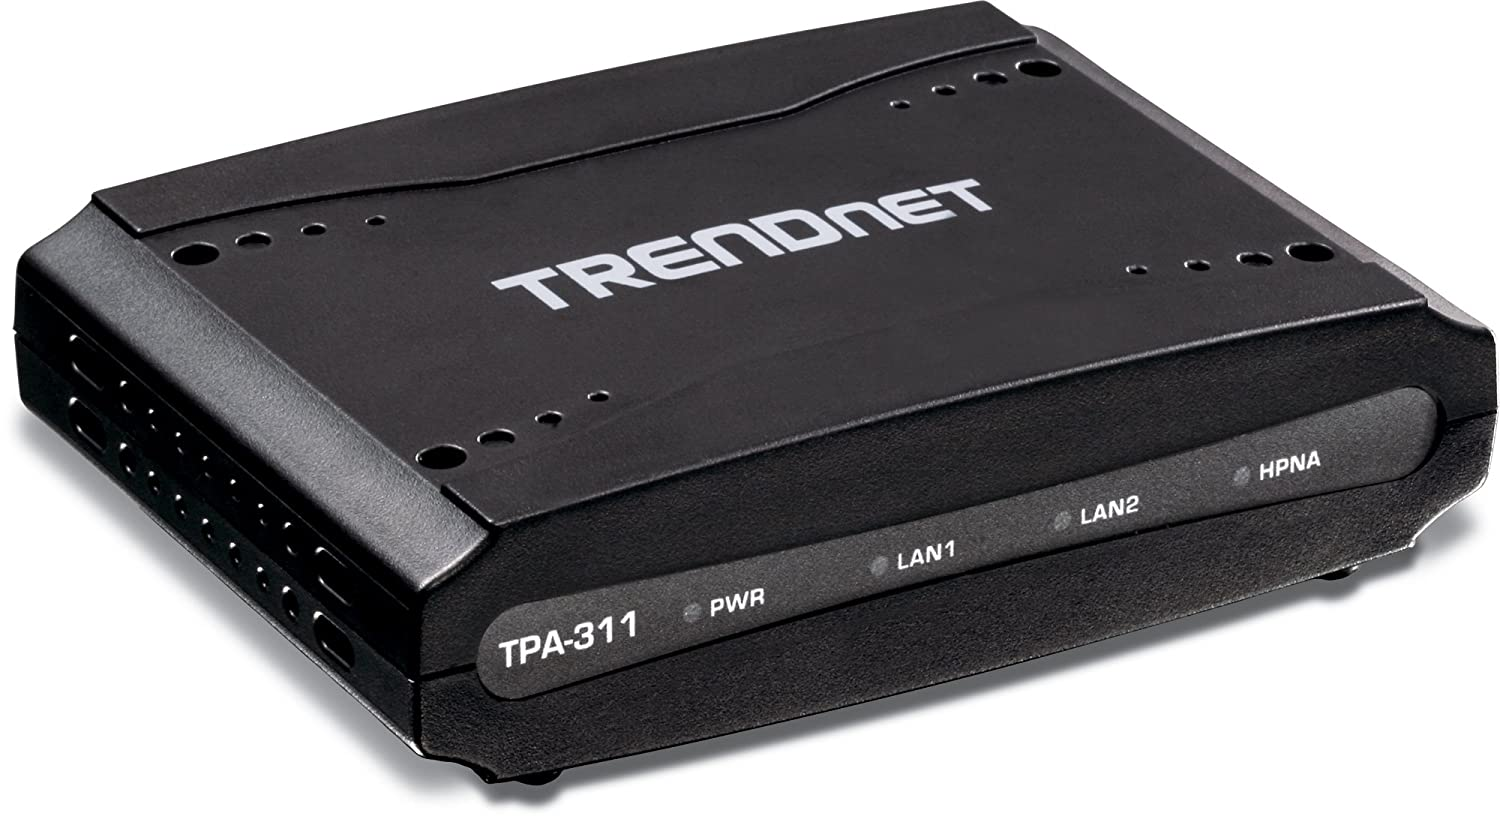 Amazon trendnet mid band hpna coaxial network adapter data amazon trendnet mid band hpna coaxial network adapter data transmission rates up to 256mbps over distances up to 1600m 5200 ft tpa 311 computers 1betcityfo Images